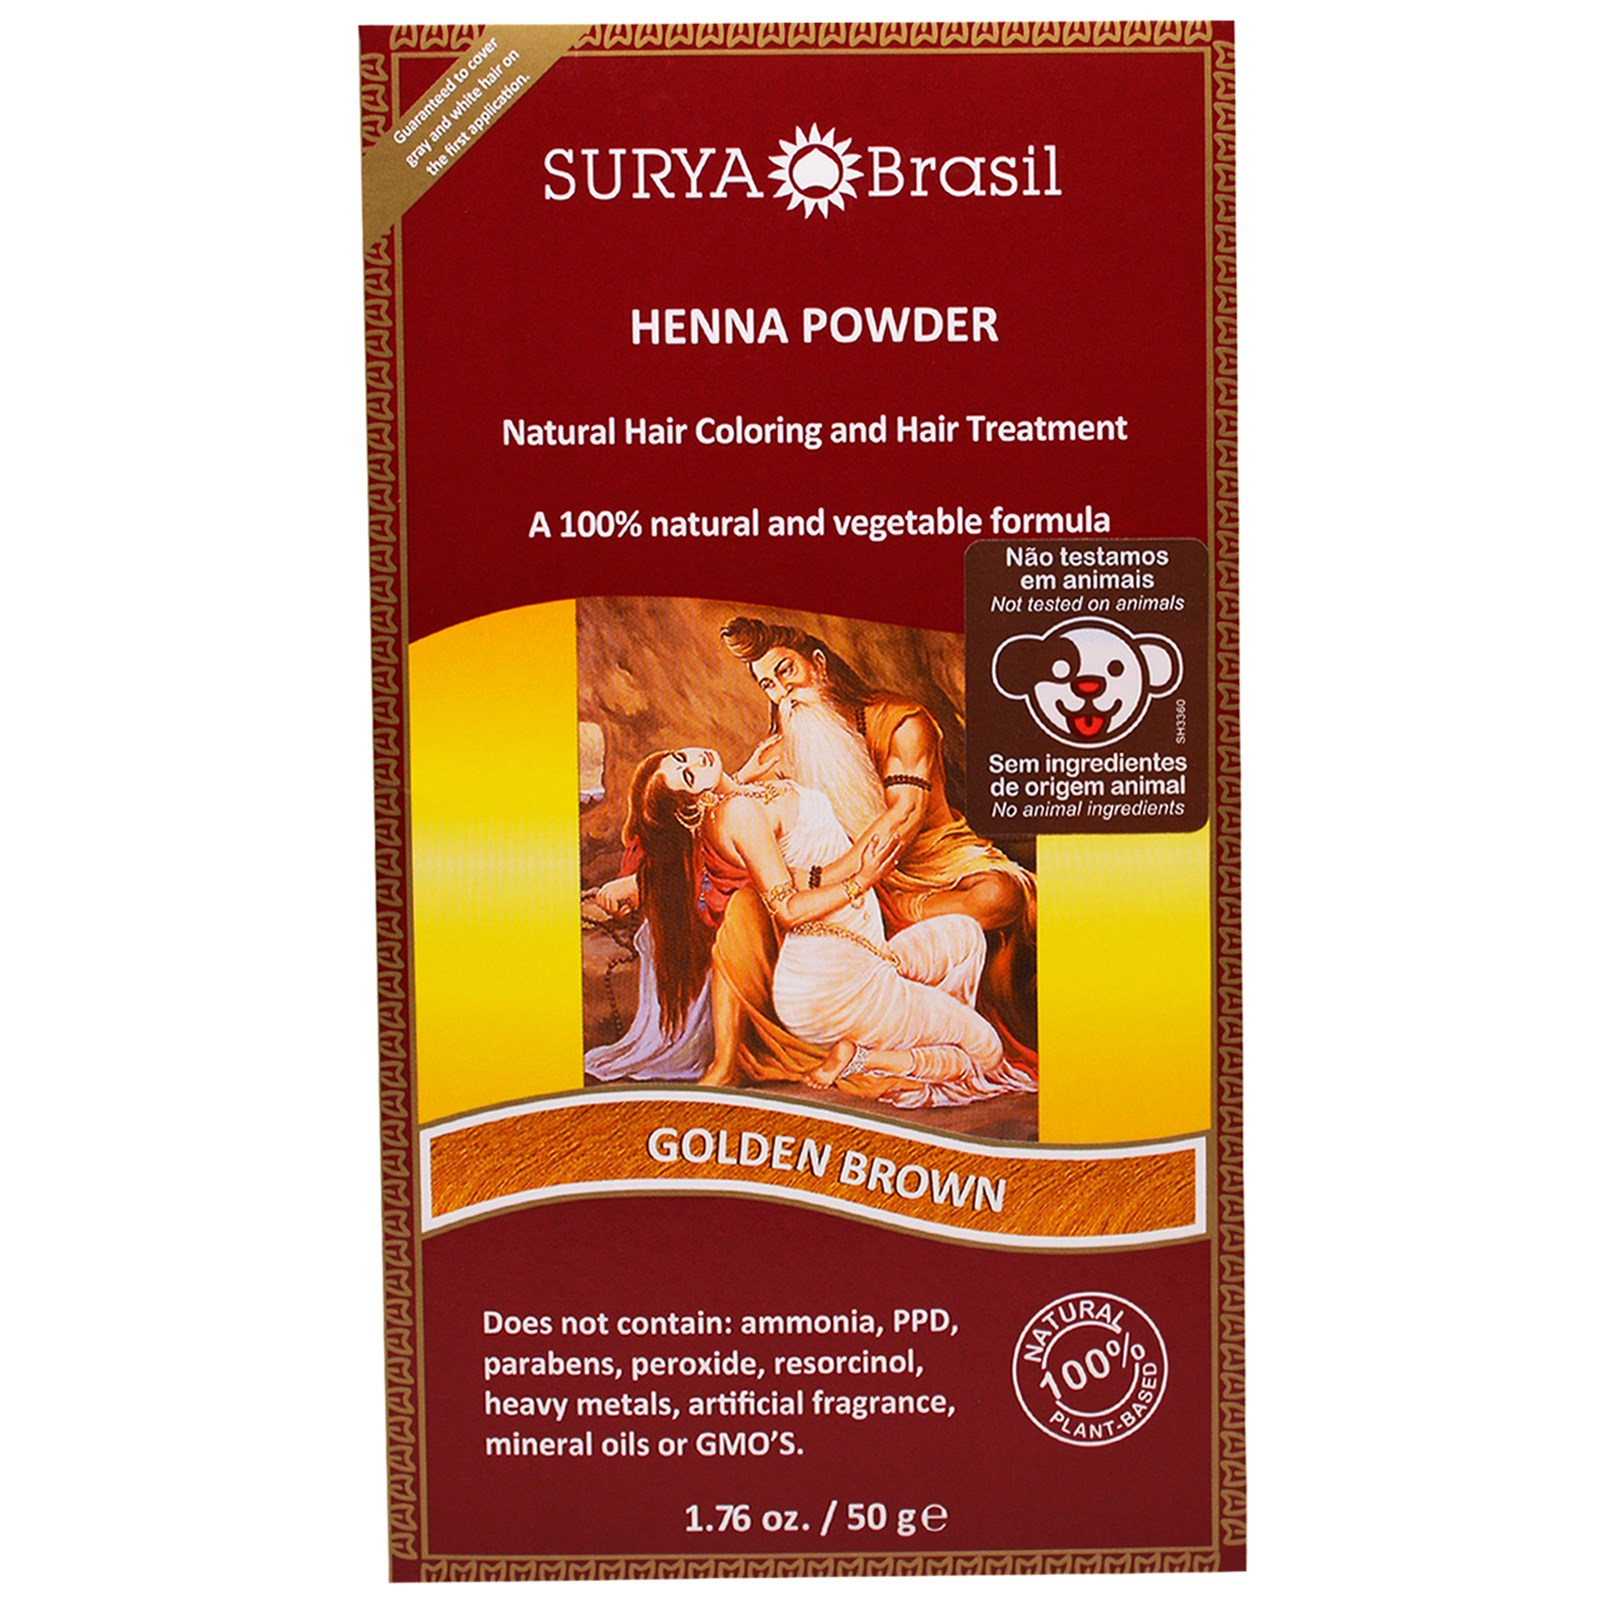 Surya Brasil Henna Powder Natural Hair Coloring And Hair Treatment